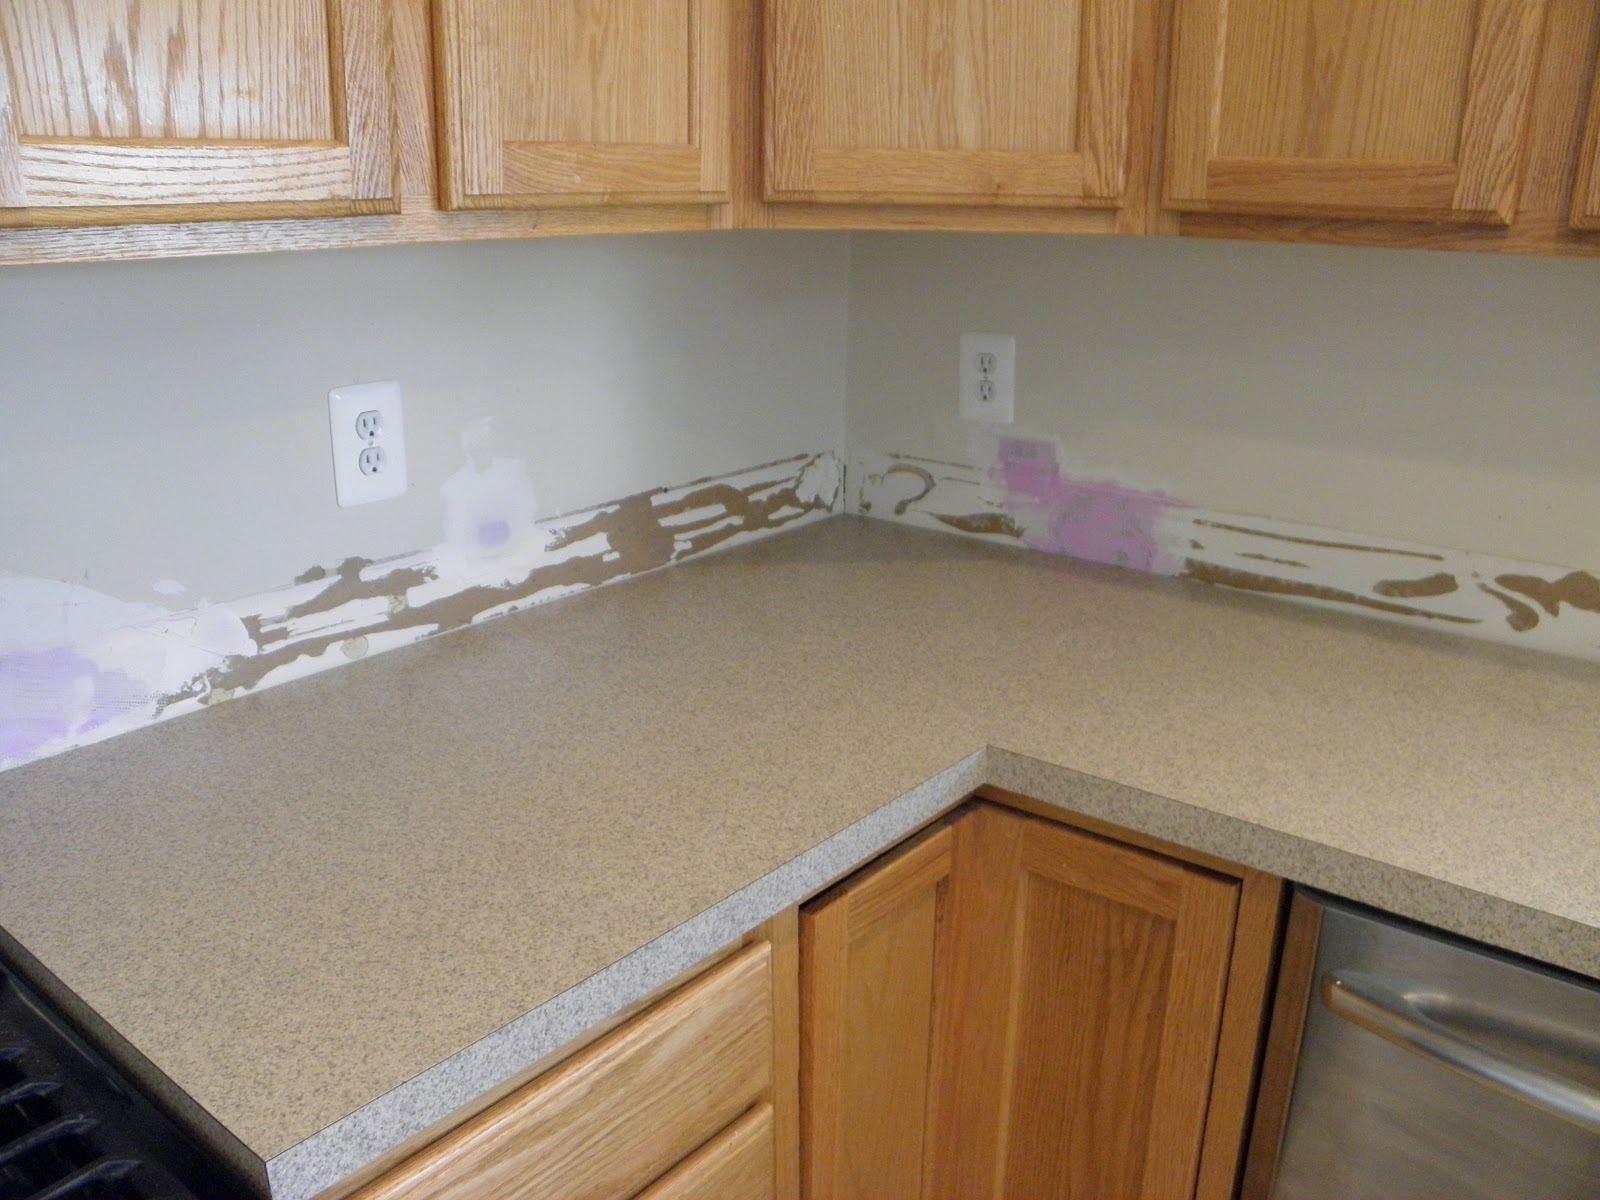 Granite Tiles For Countertops Over Laminate   Home Improvement